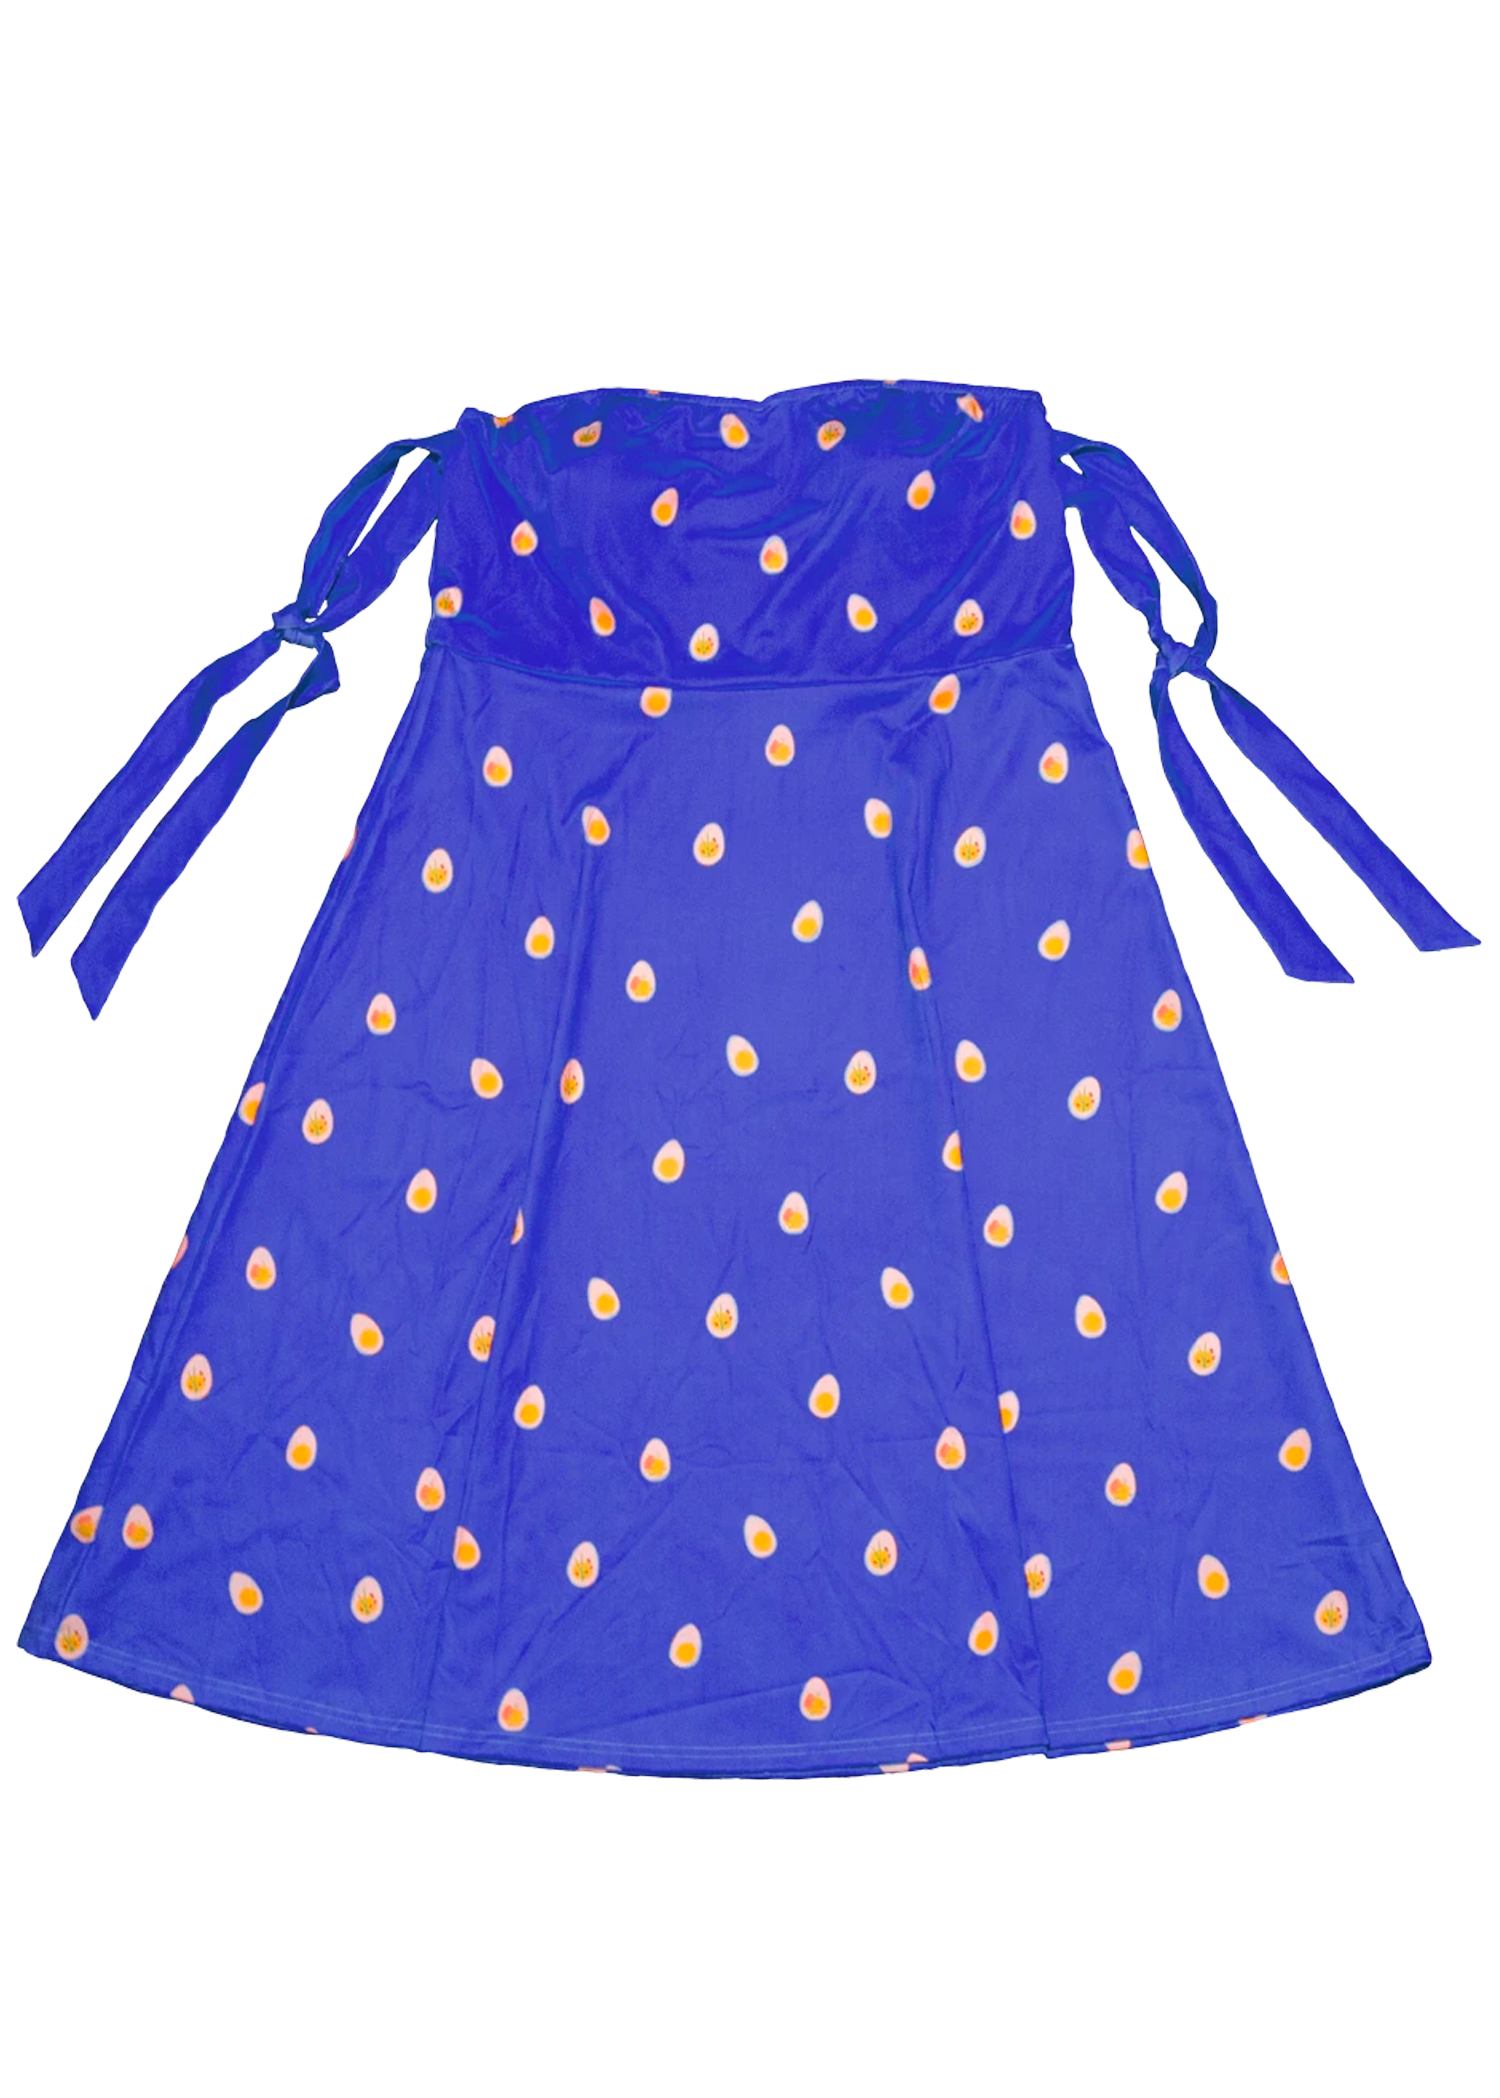 Deviled Egg Midi Dress in Royal Blue